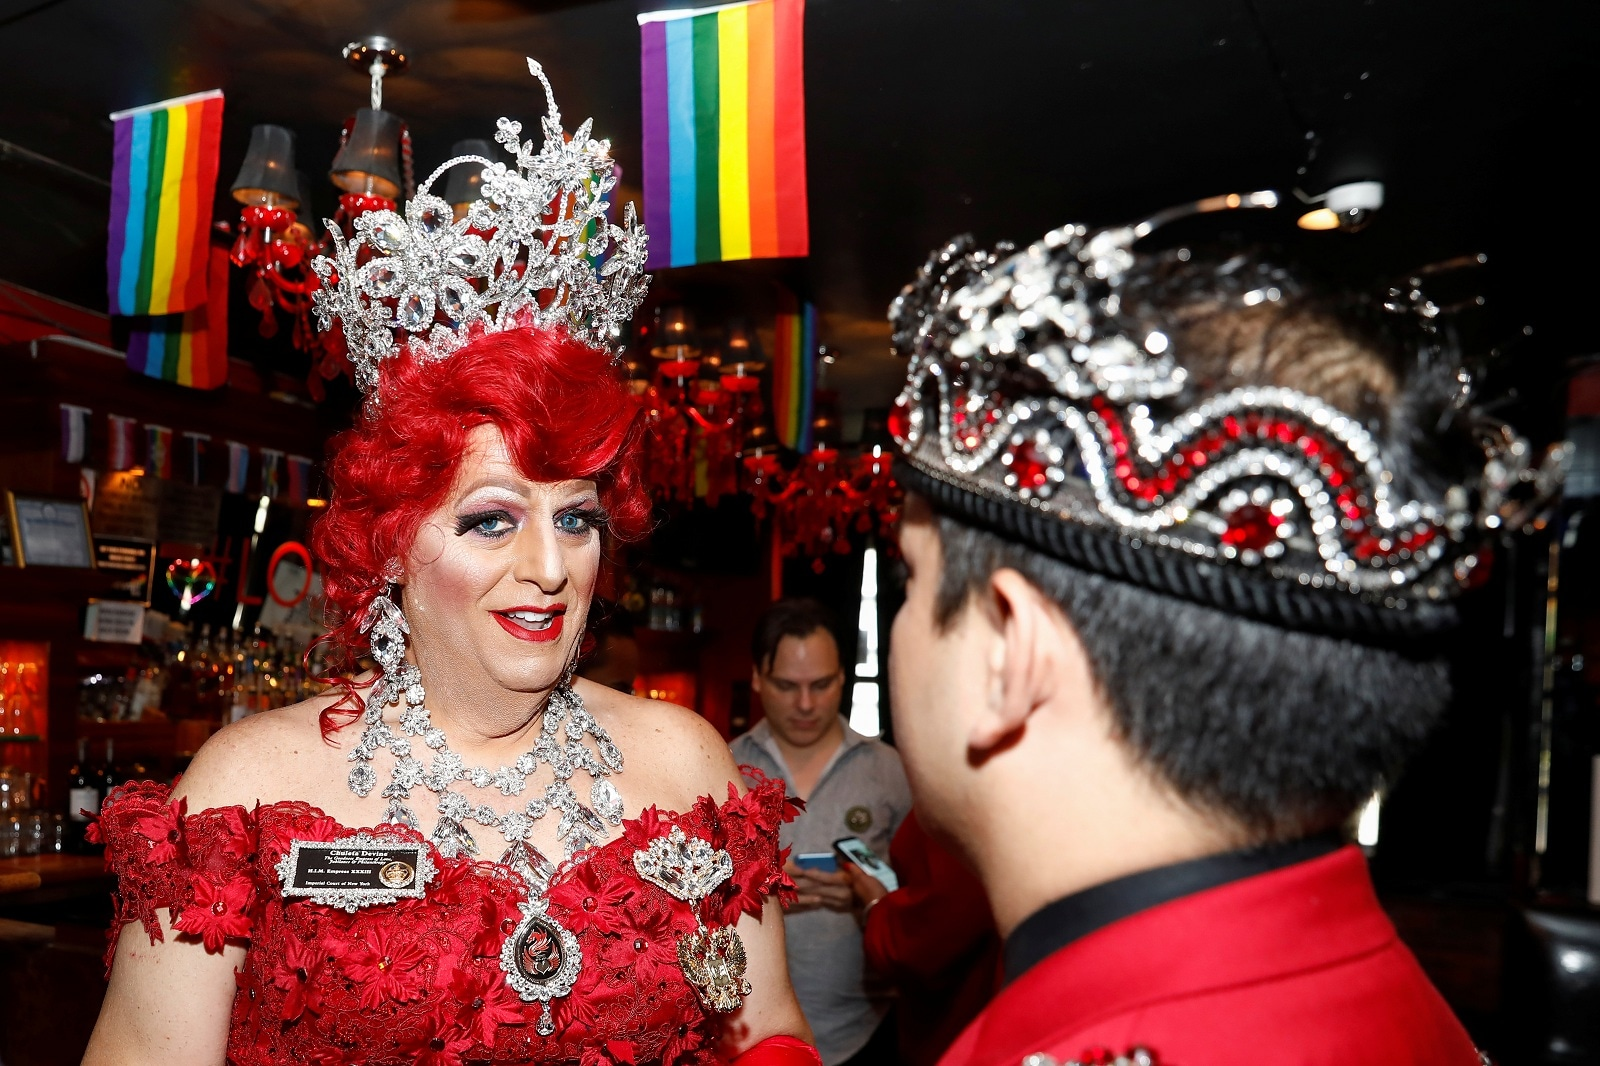 Chuleta Divine, a member of the Imperial Court of New York, a social, fundraising organization which has raised millions of dollars for social service and health support organizations, smiles inside the Stonewall Inn in New York, US, June 27, 2019. REUTERS/Shannon Stapleton